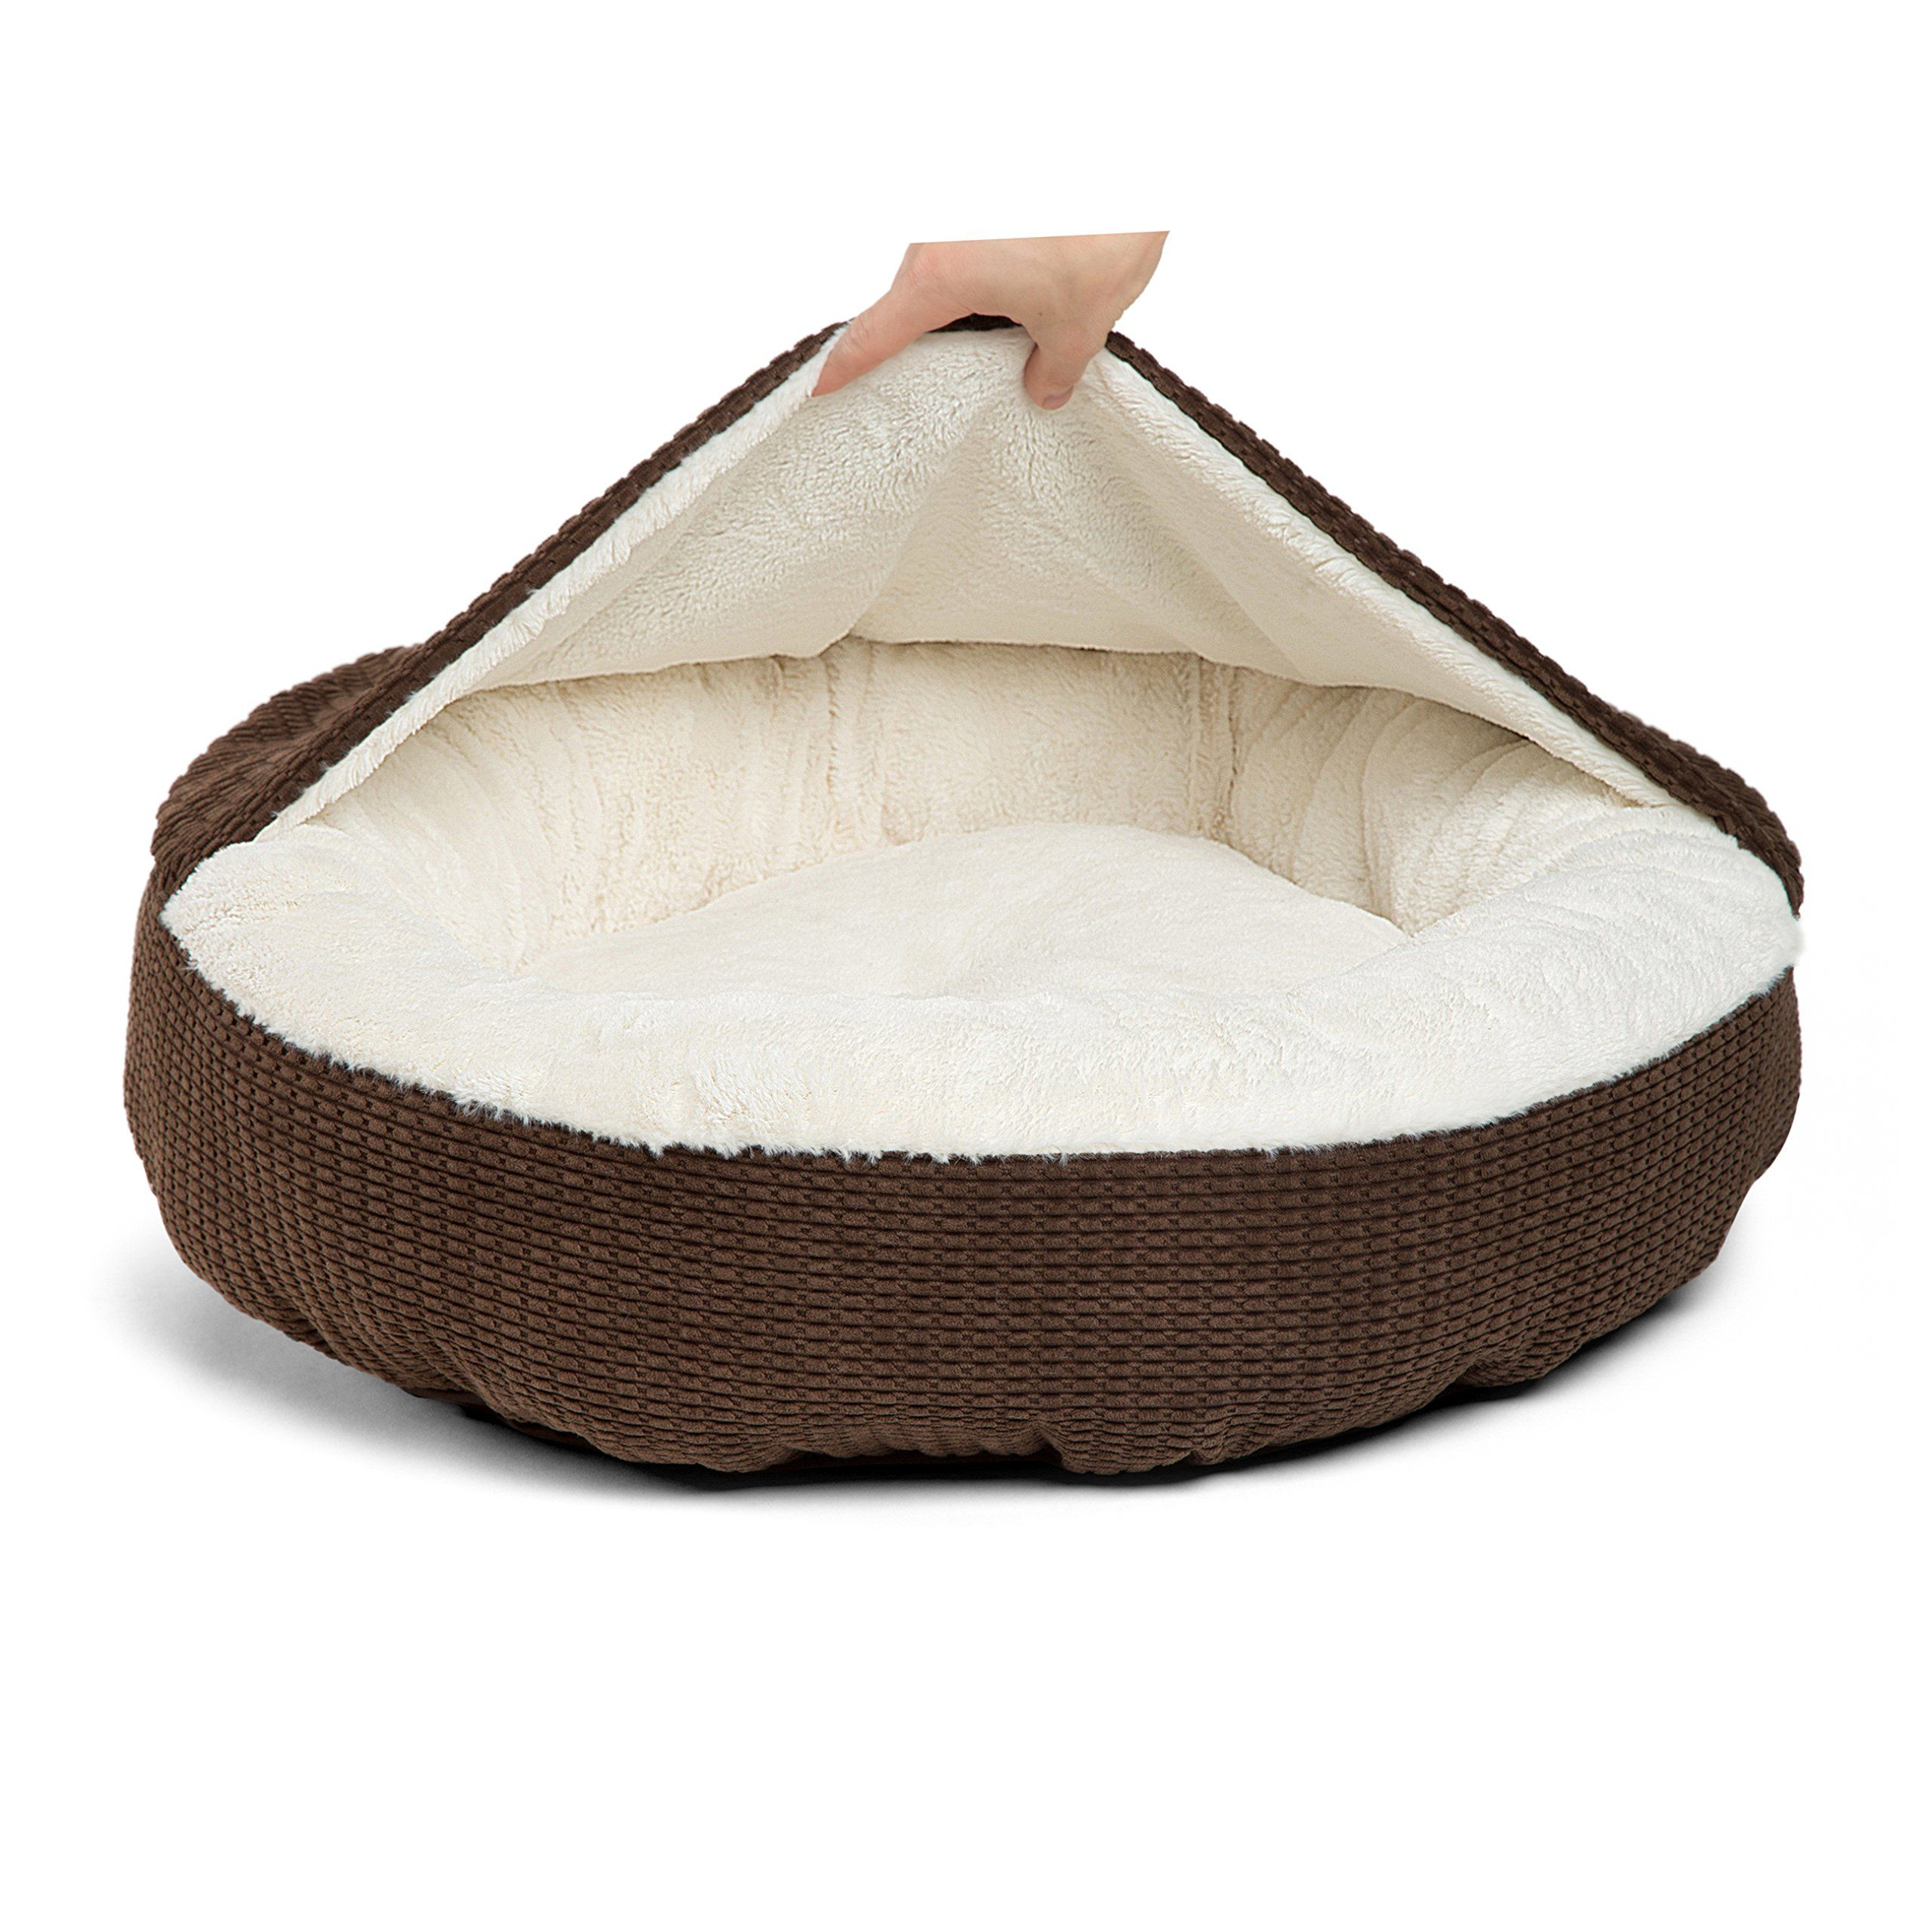 Best Friends By Sheri Cozy Cuddler In Mason Dog Cat Bed 26 X 26 Dark Chocolate Read More At The Image Link Dog Bed Furniture Dog Bed Bed Furniture Design